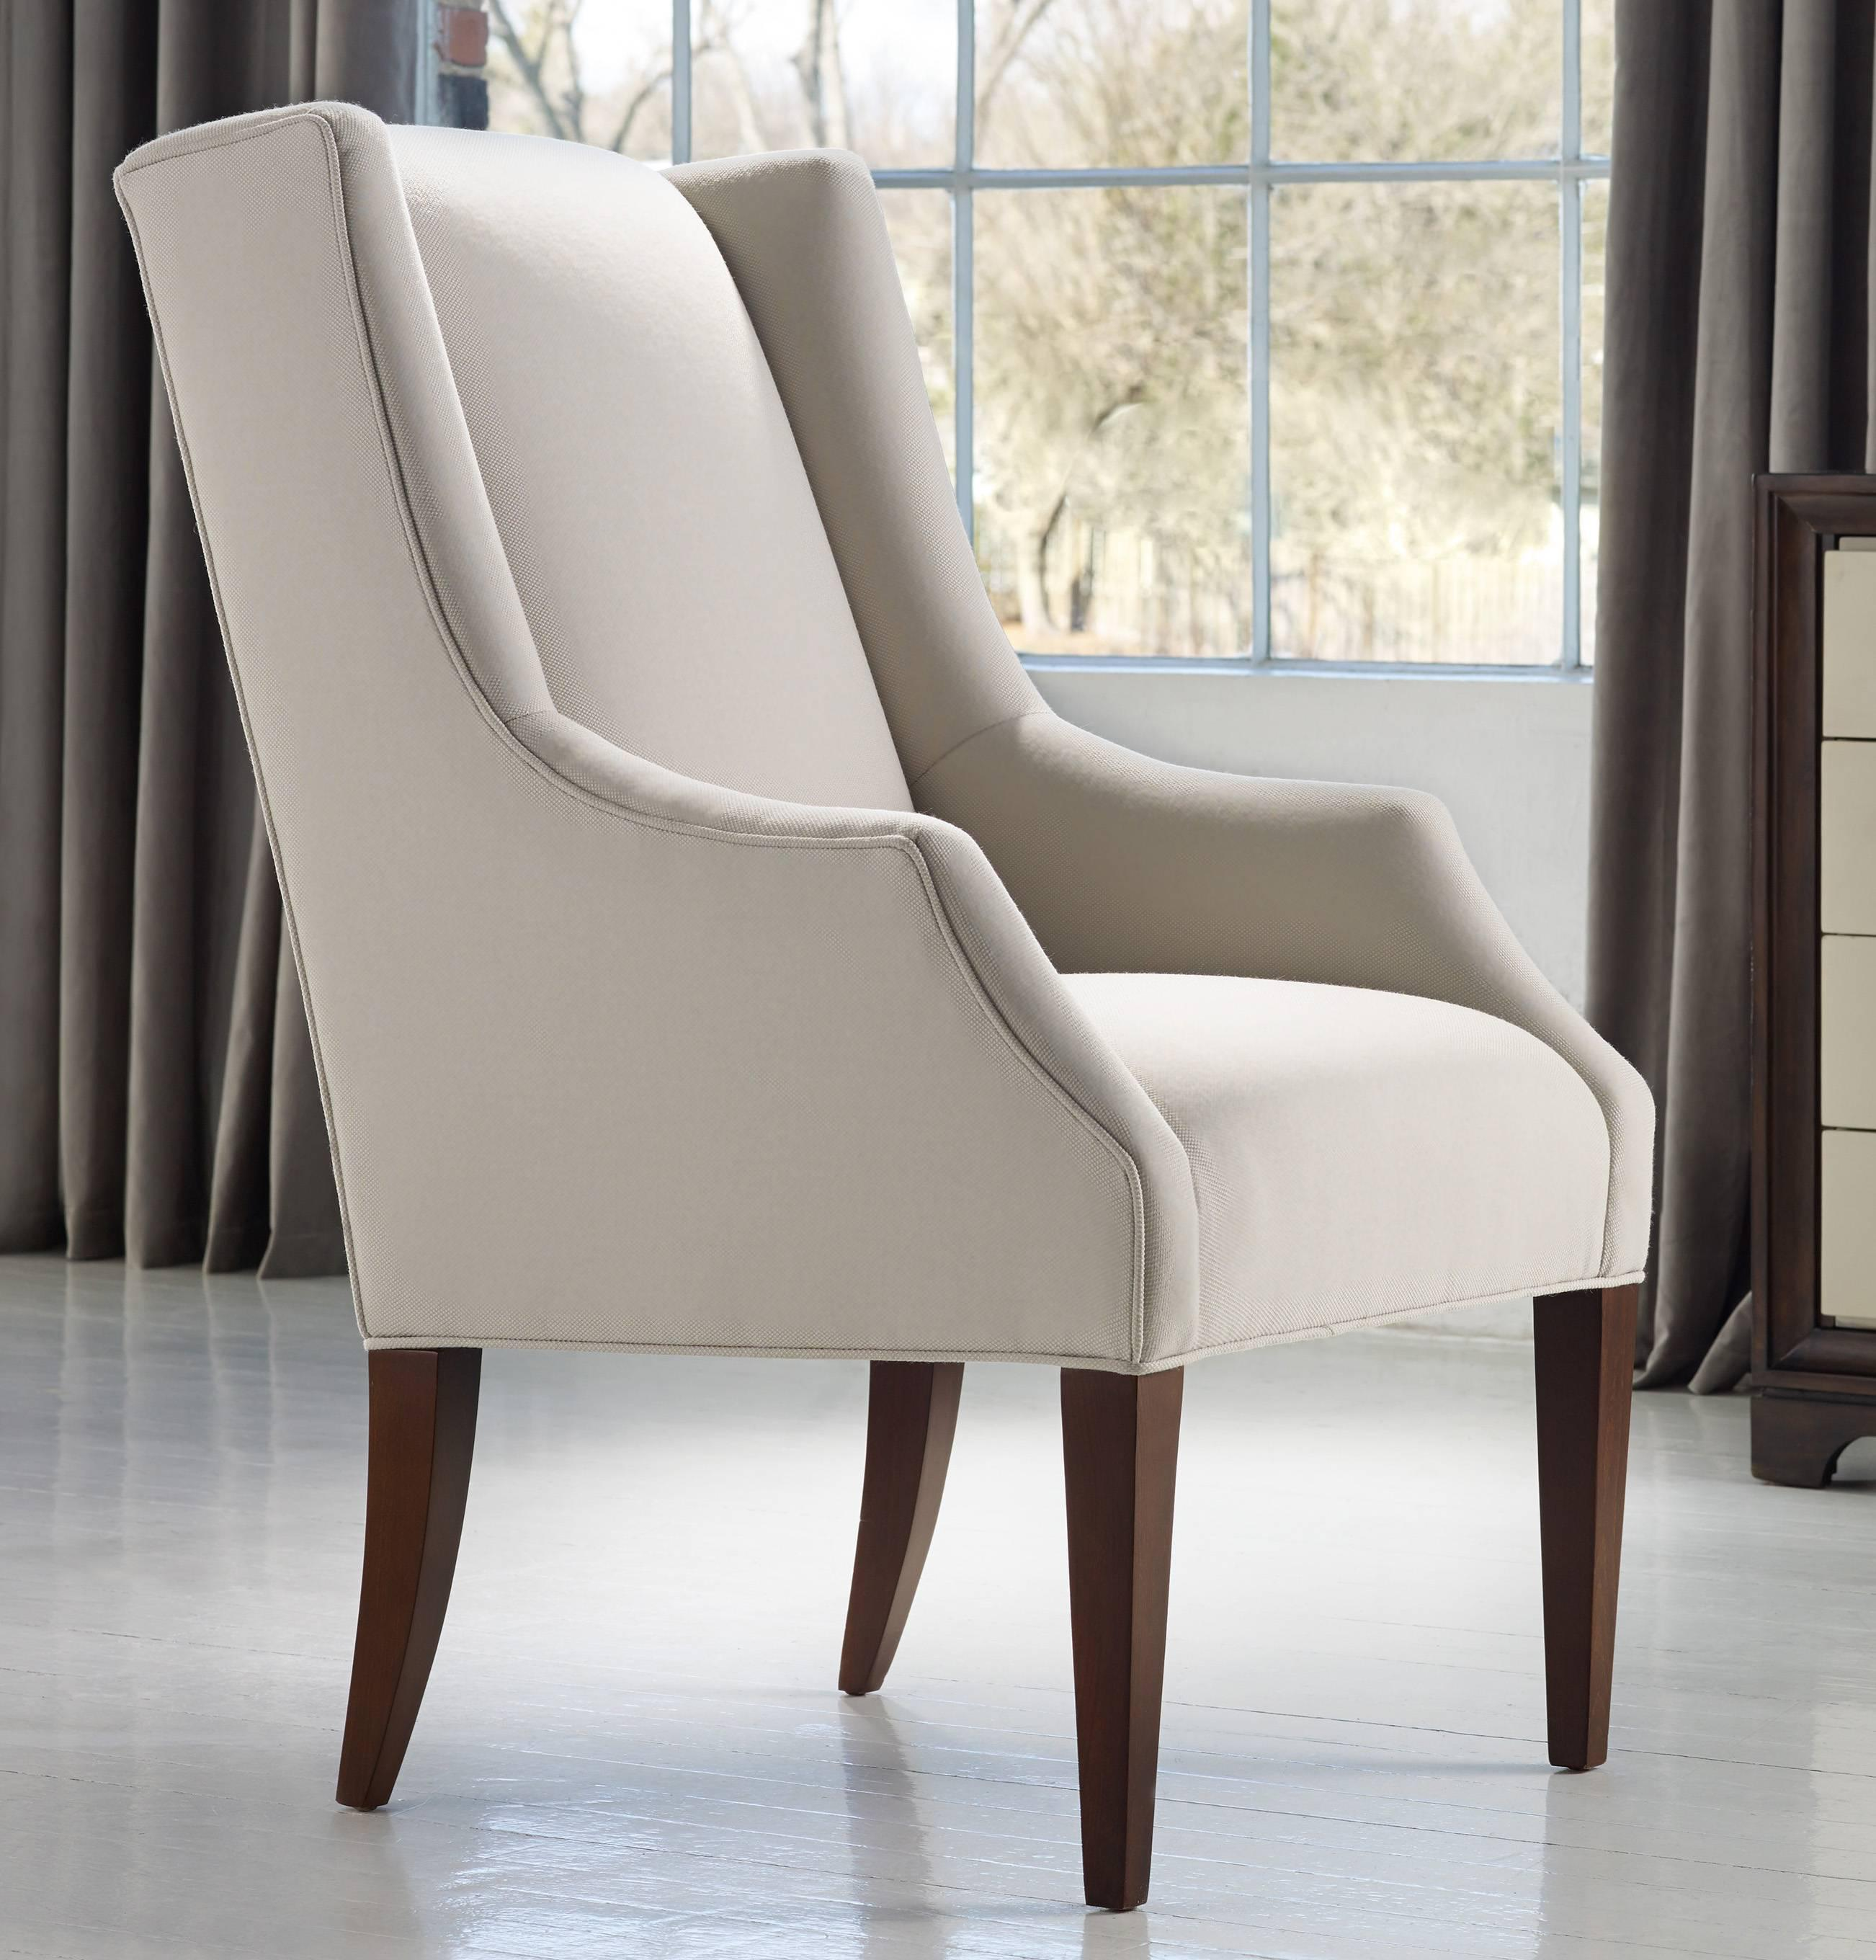 Gaston Dining Chair H Contract Furniture